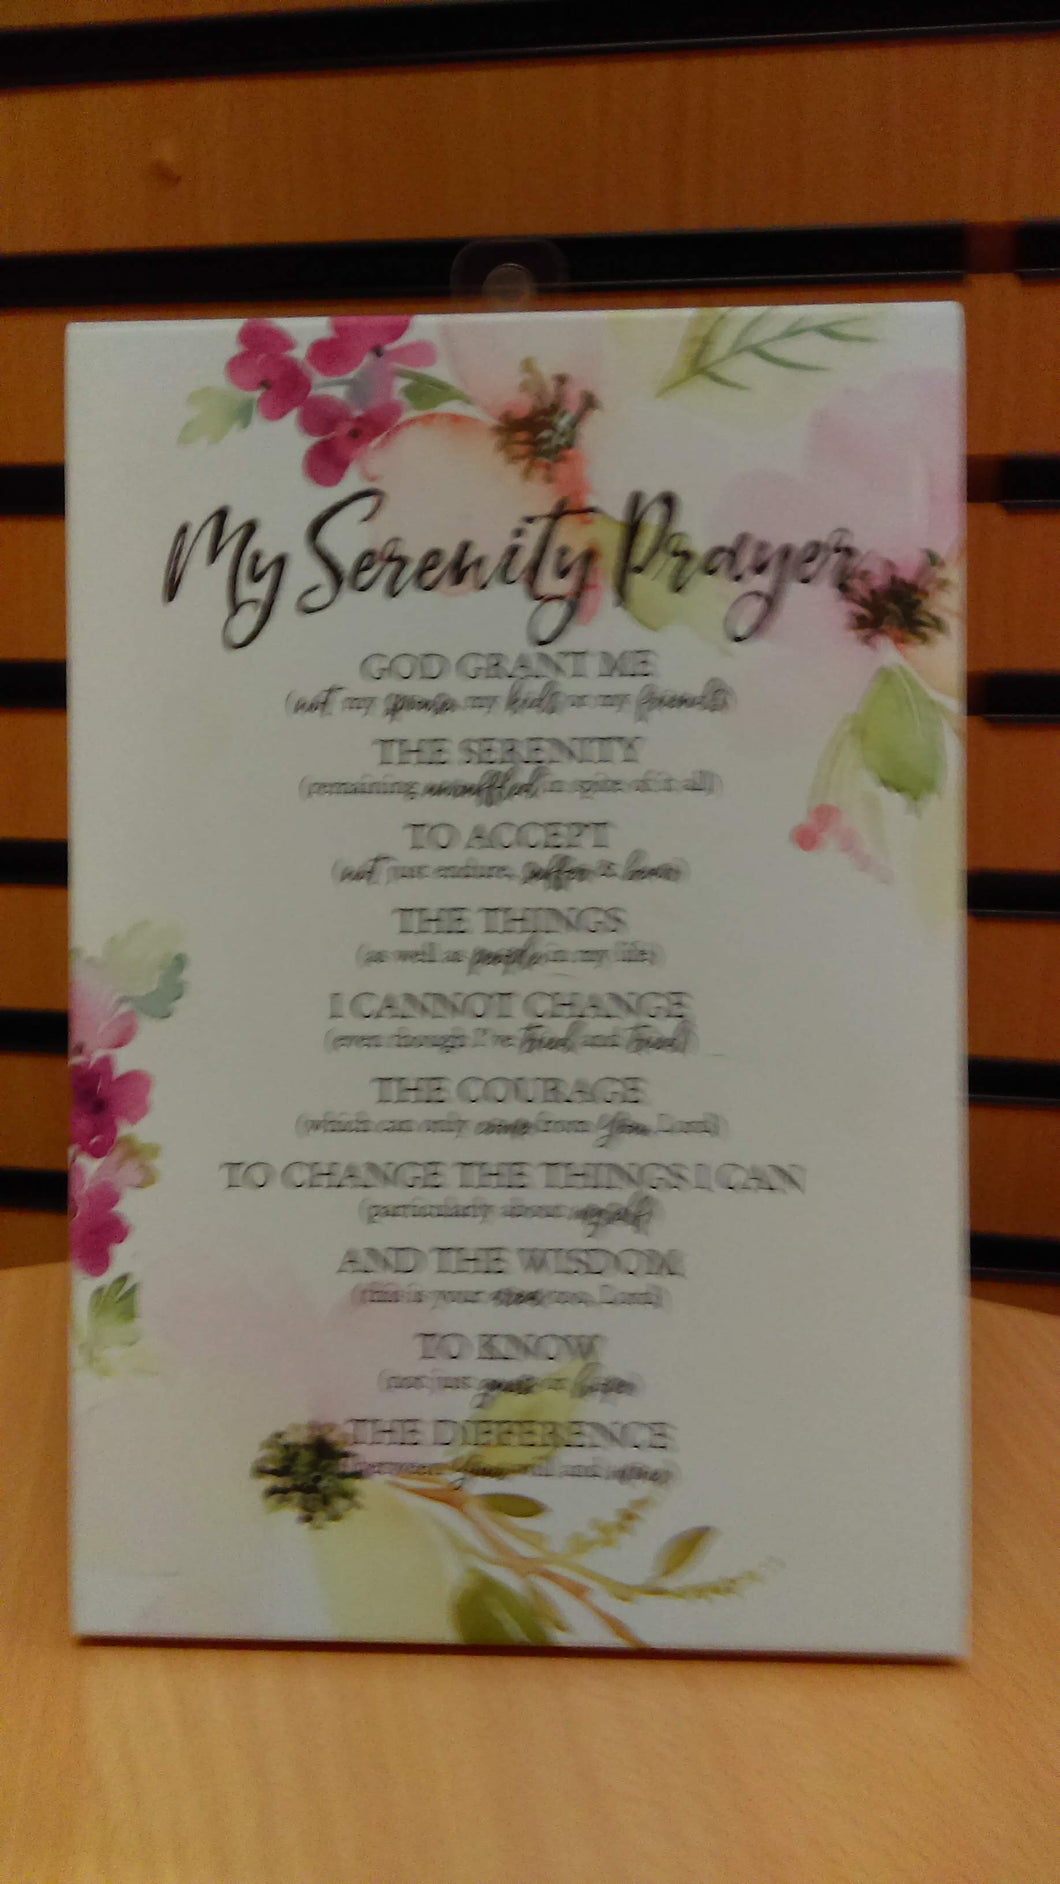 Plaque: My Serenity Prayer